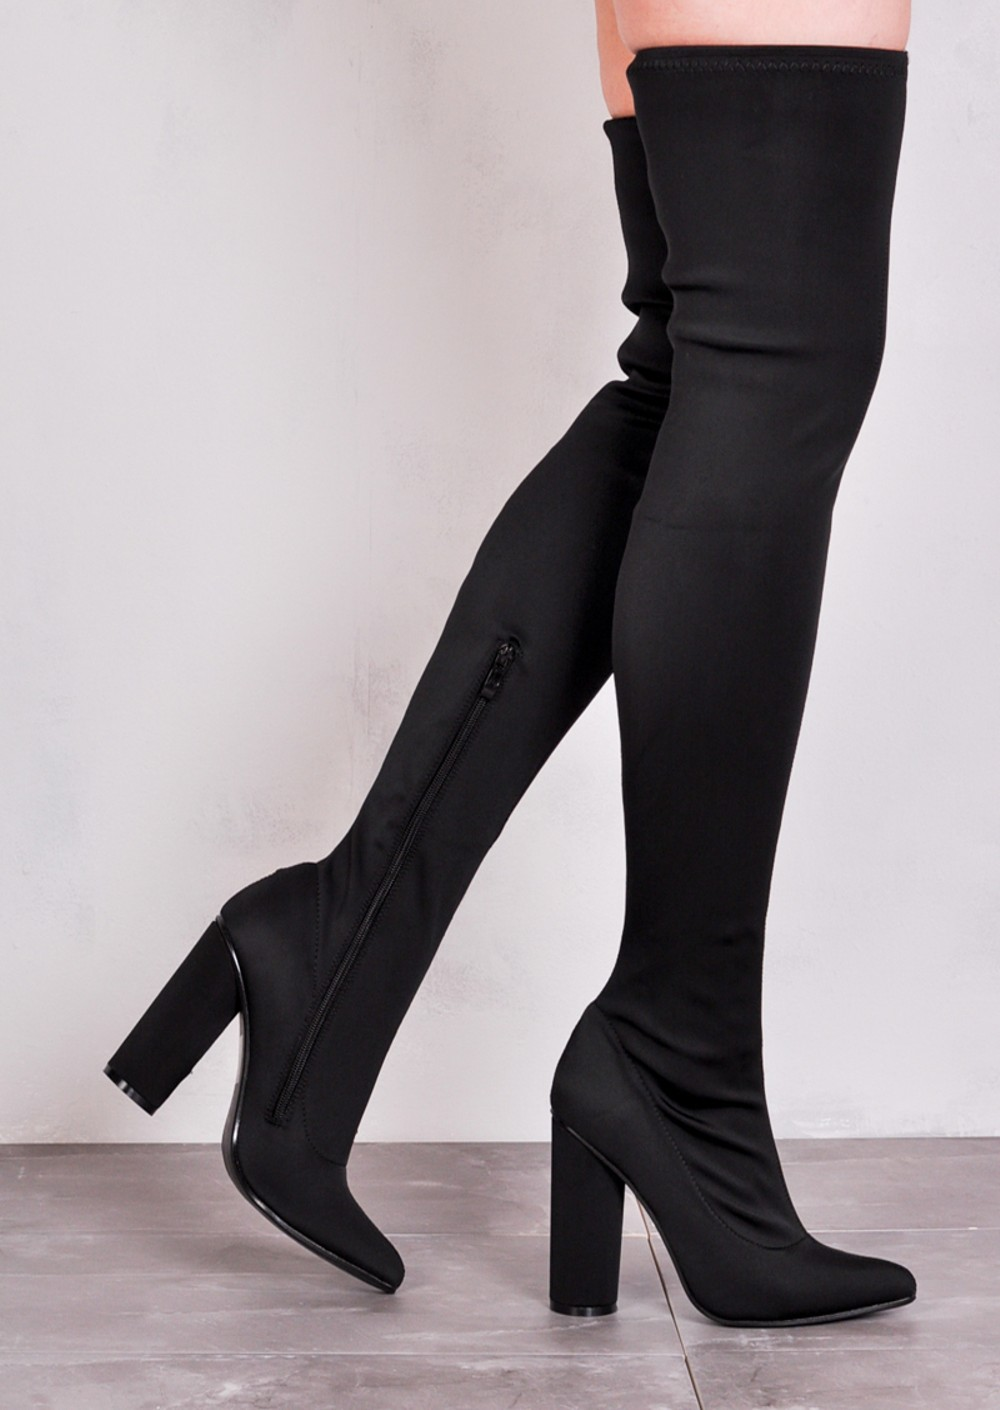 Long Thigh BootsStiletto Mid Heels Over The Knee Boots Pointed Toe Stretchy Thigh High Knee High Boots